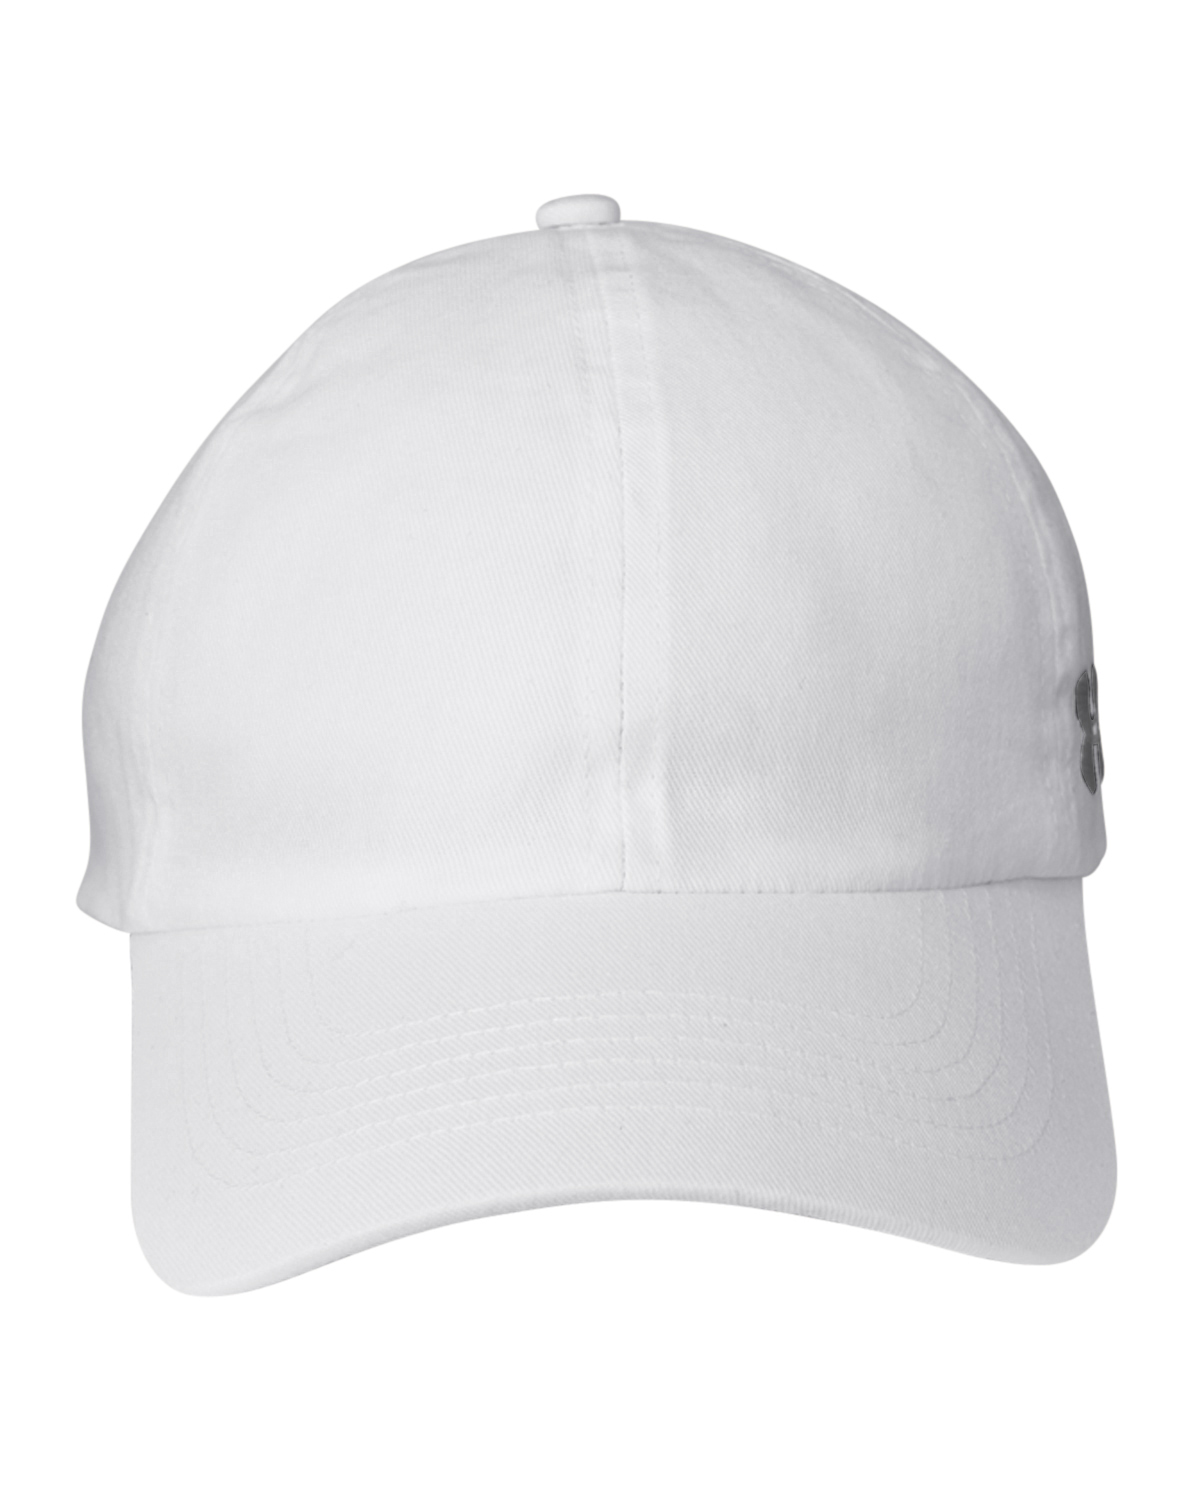 Under Armour 1295126 - Ladies' Chino Adjustable Cap